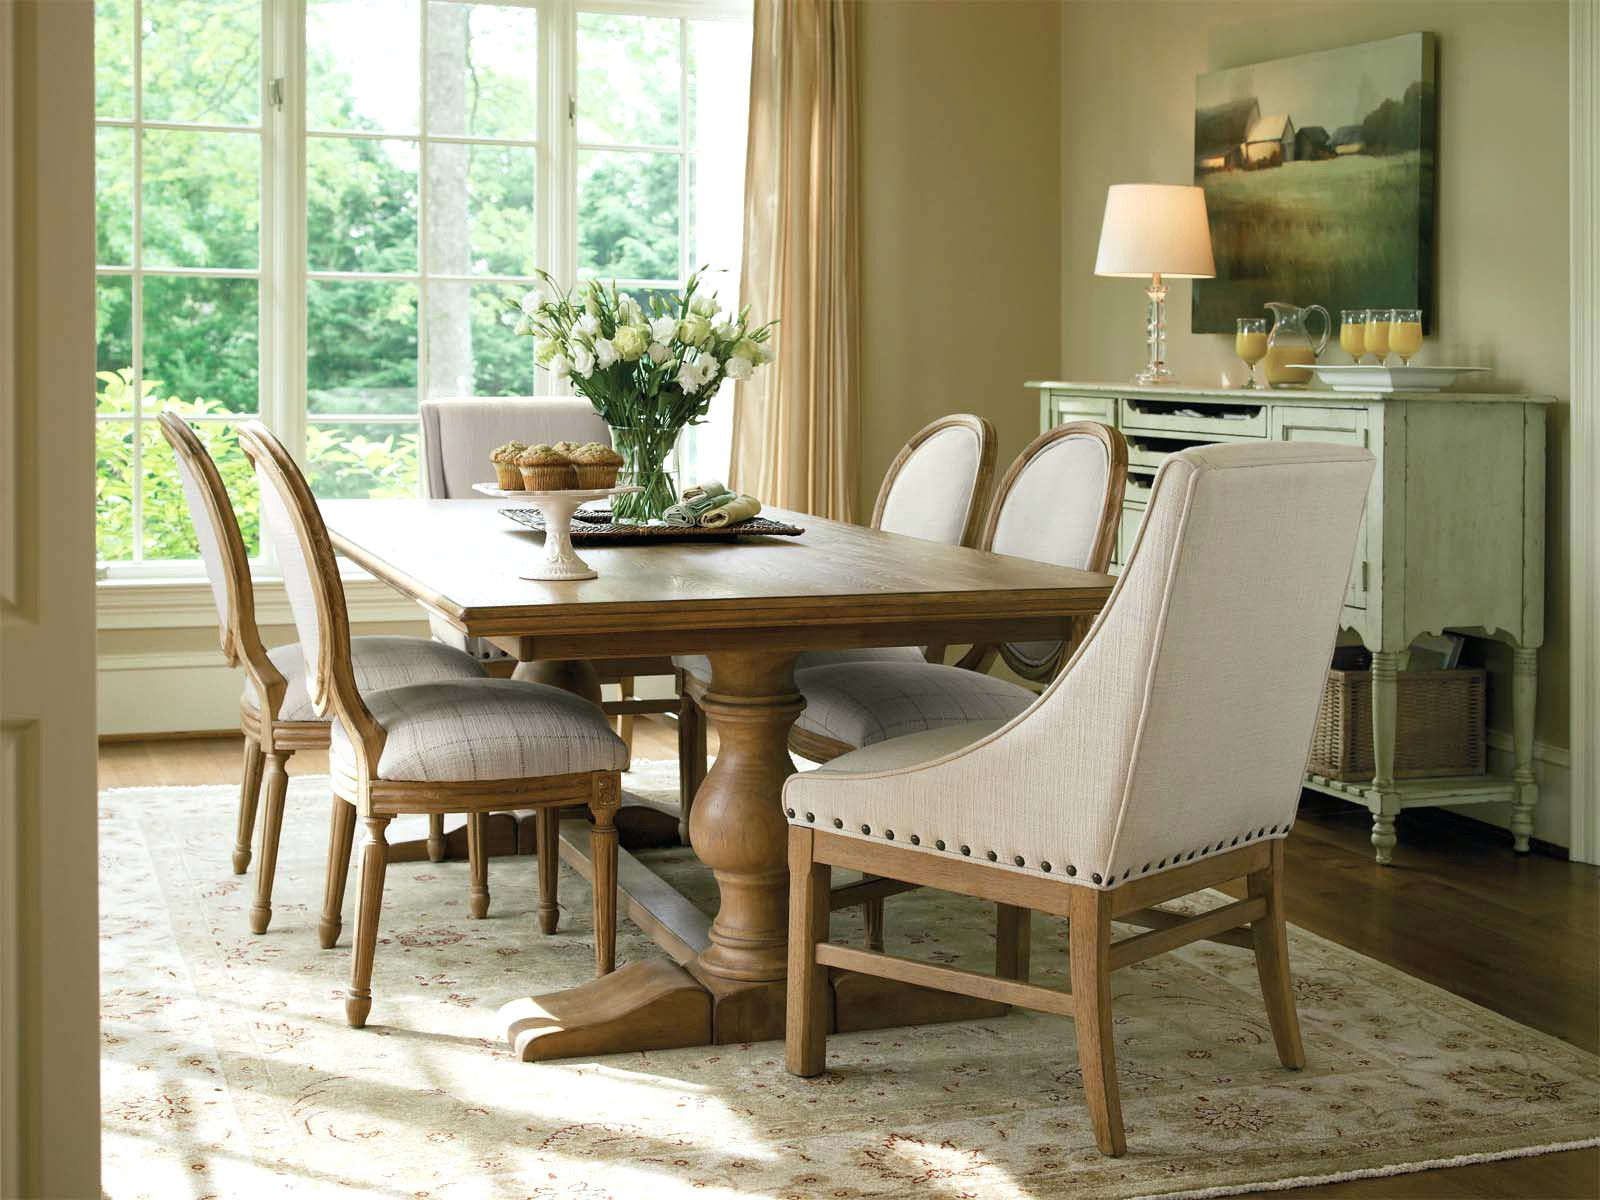 French Country Dining Table With Bench Country Style Dining Table With  Bench Country Dining Table With Bench Glamorous Country Dining Tables And  Chairs ...